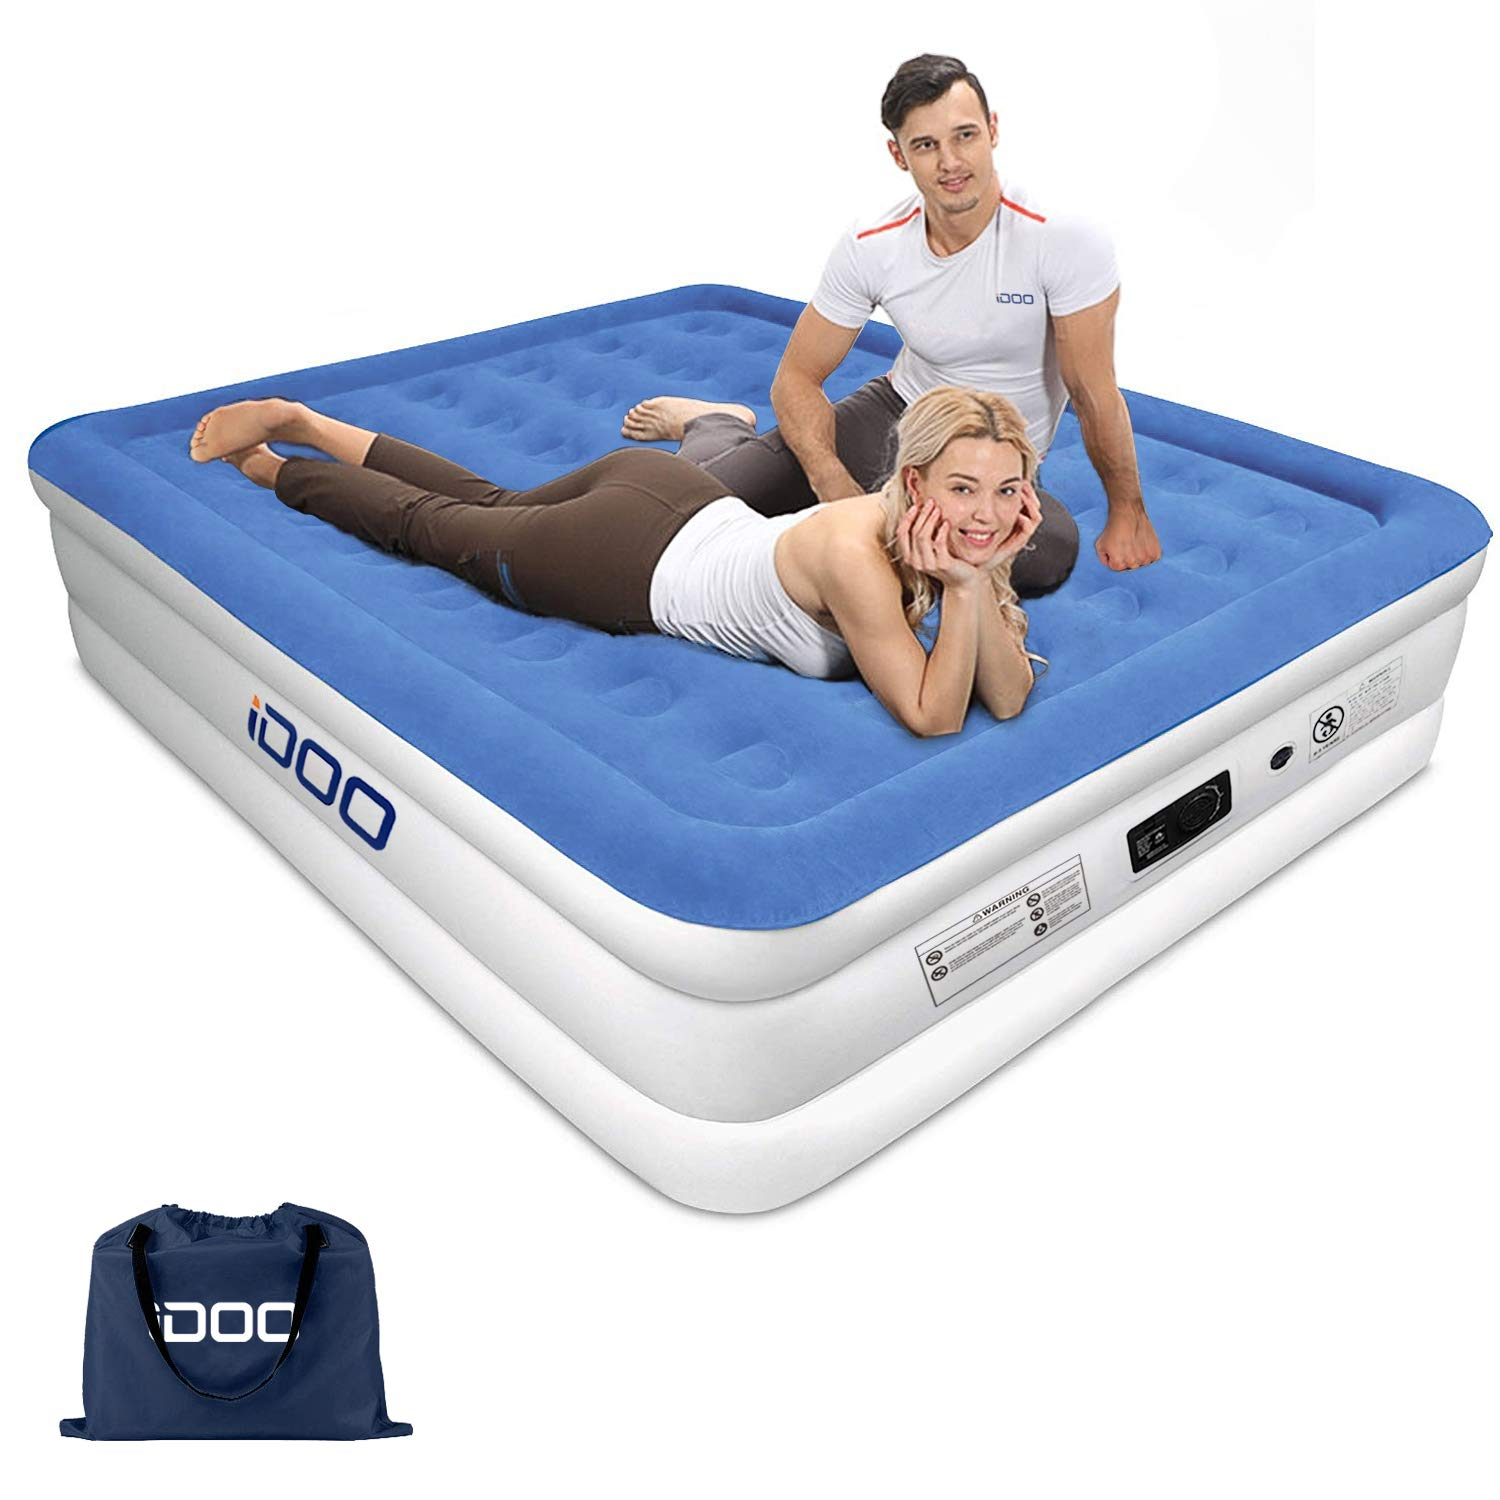 iDOO Air Mattress Queen Air Bed with Built-in Pump Inflatable Blow Up Air Mattress for Guest Family Camping Premium Soft Flocked Top with Storage Bag and Repair Patches Size 80 x 60 x 18 inch Blue